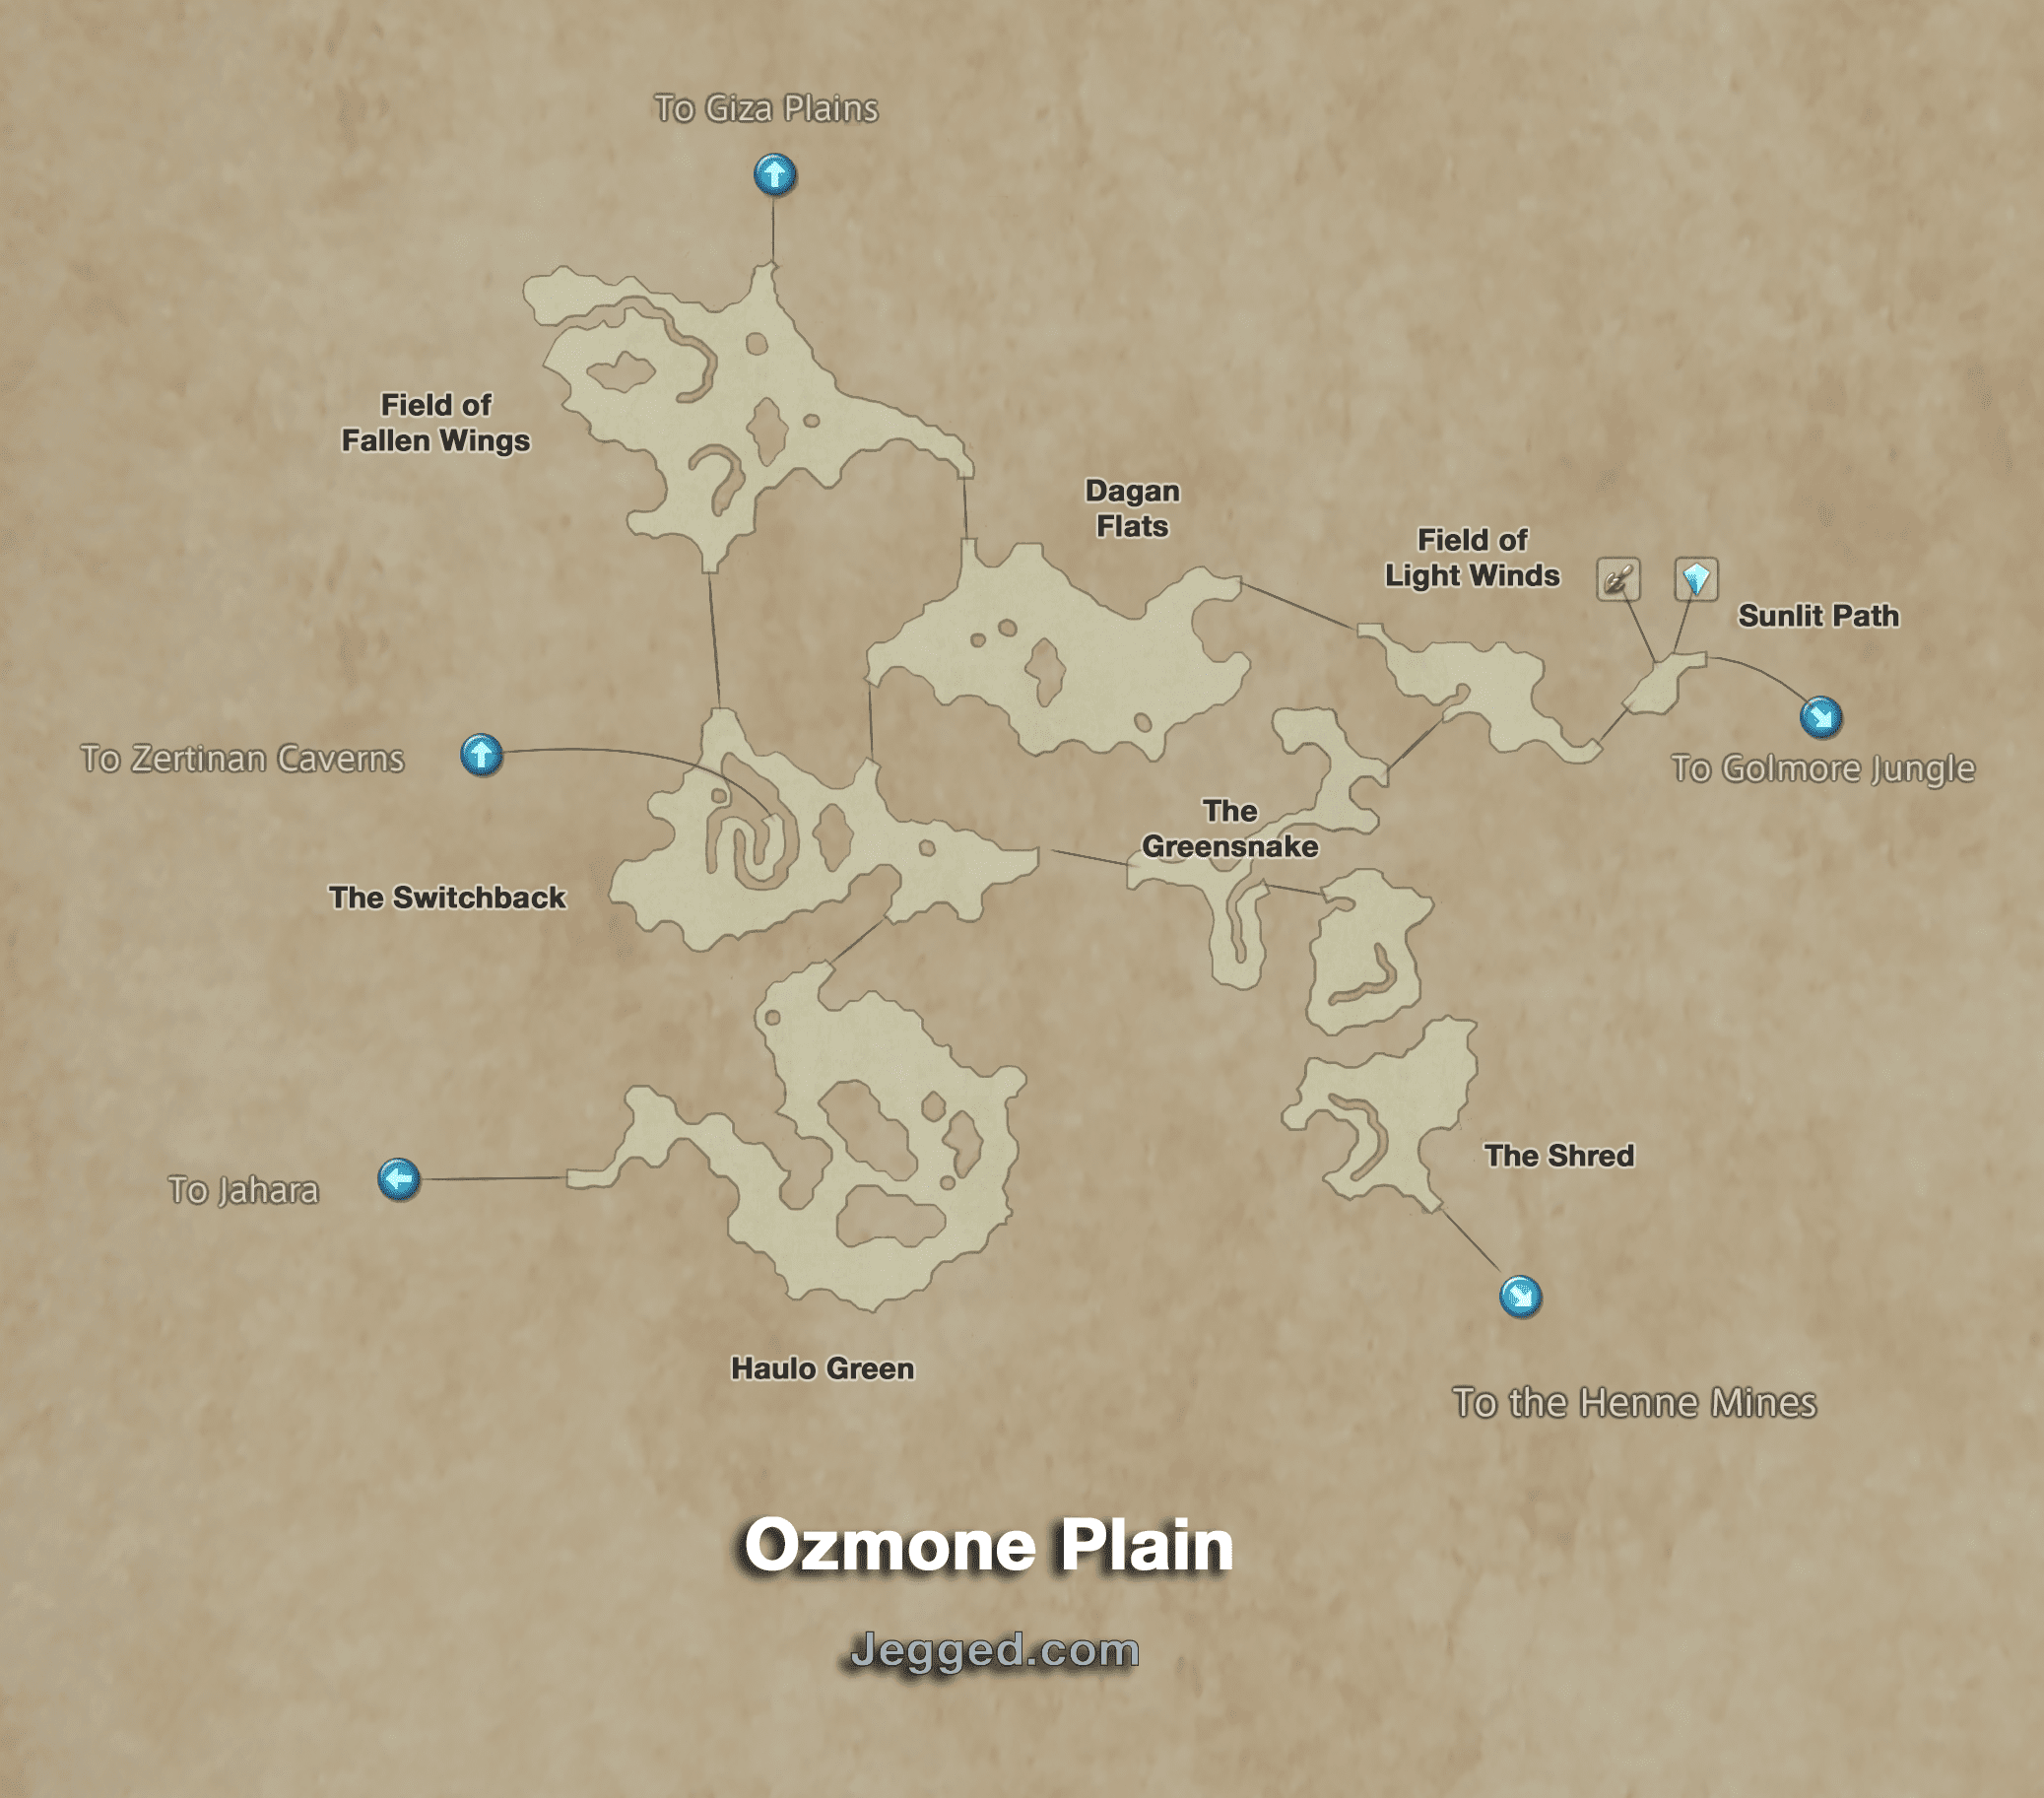 Map of the Ozmone Plain